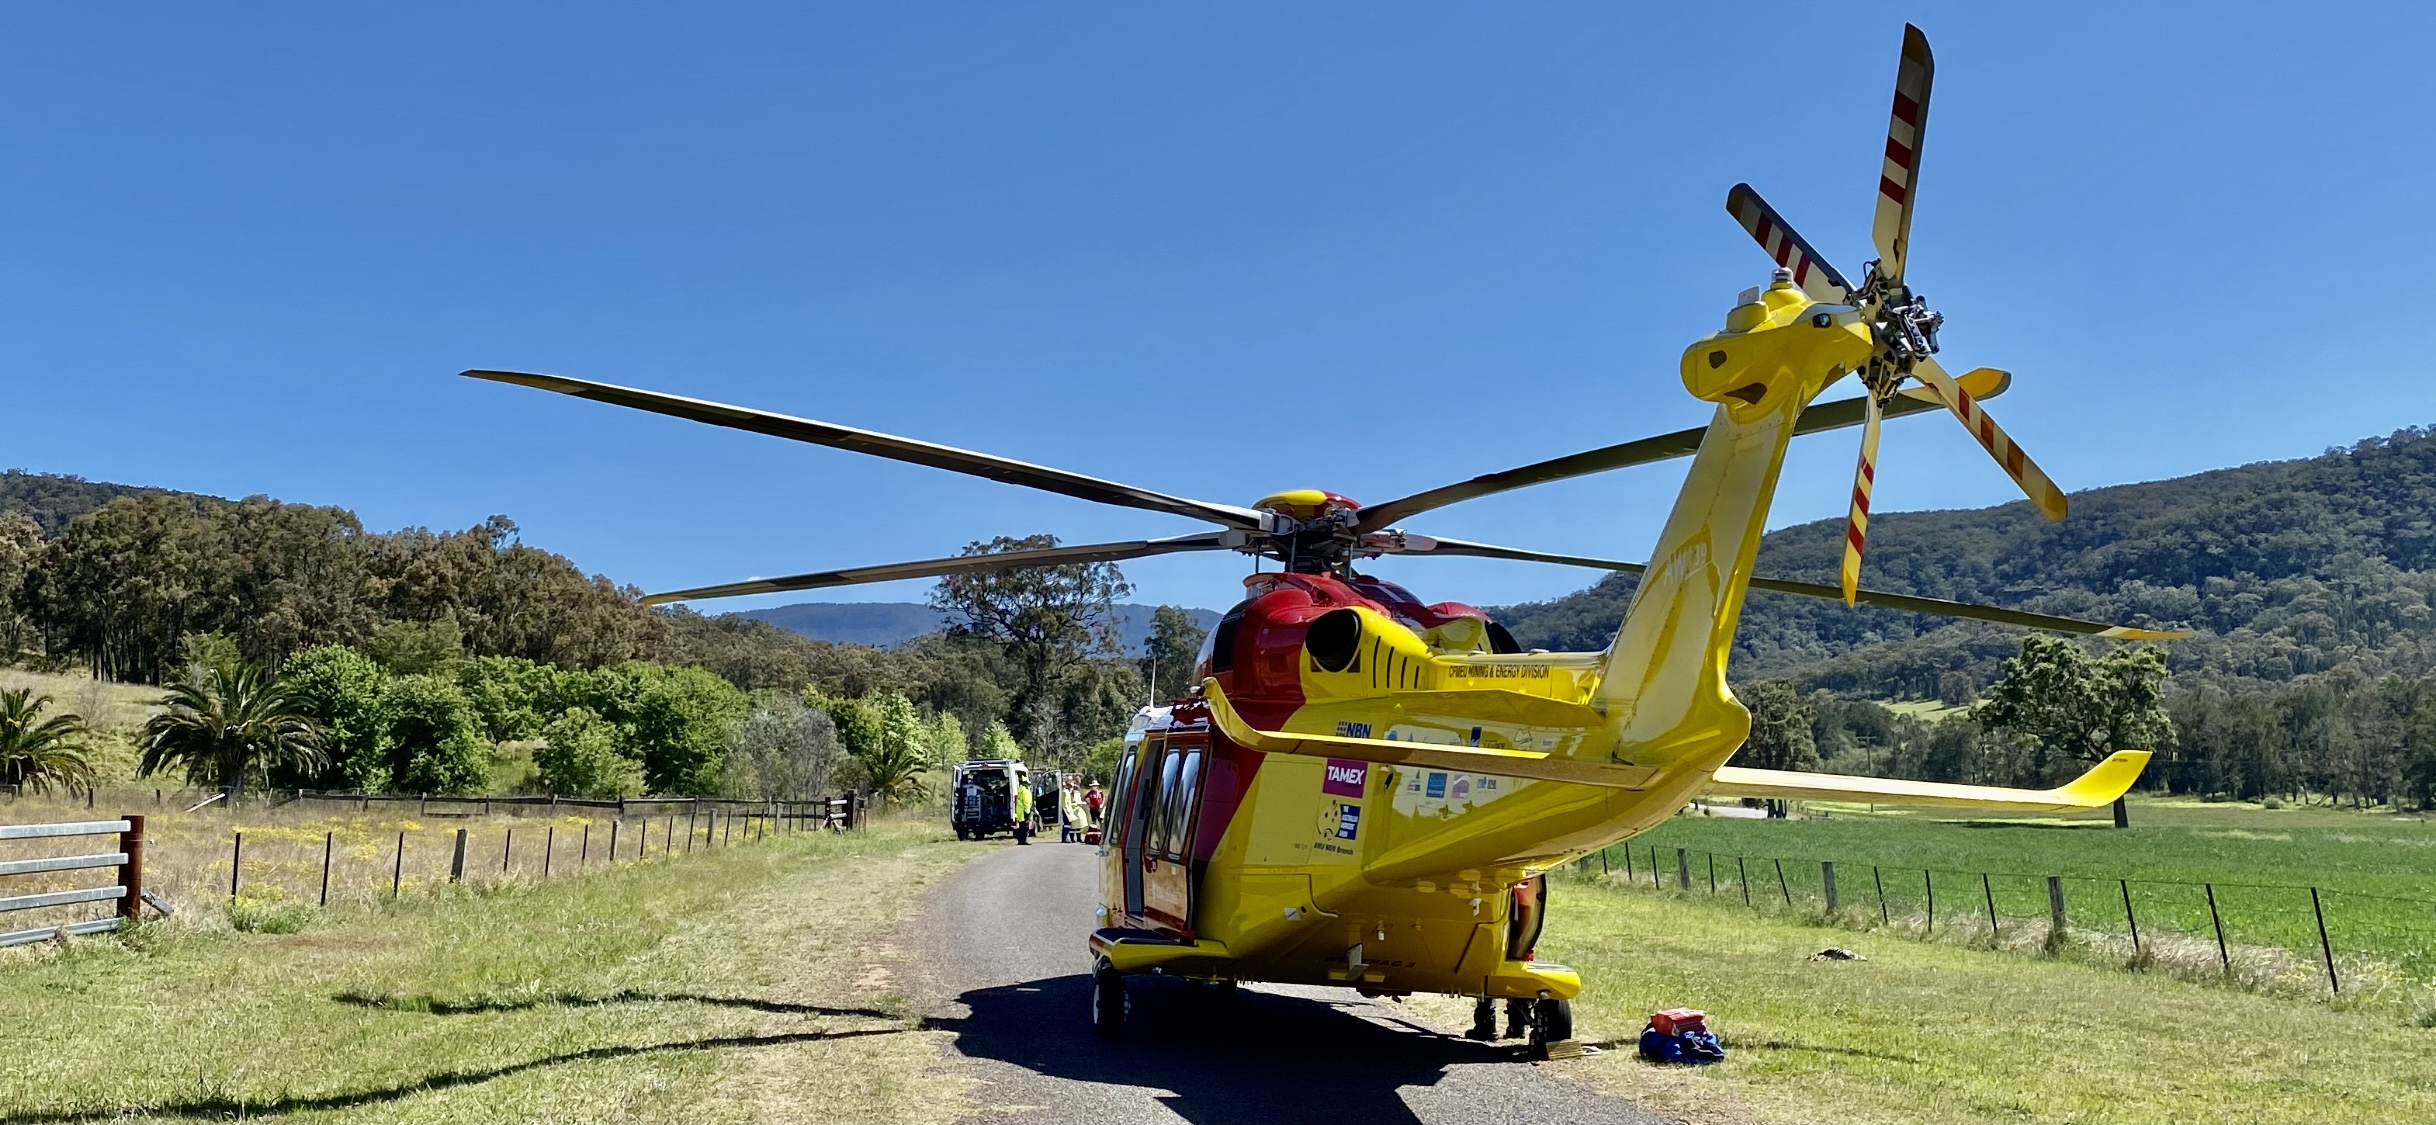 Cycling accident near Scone